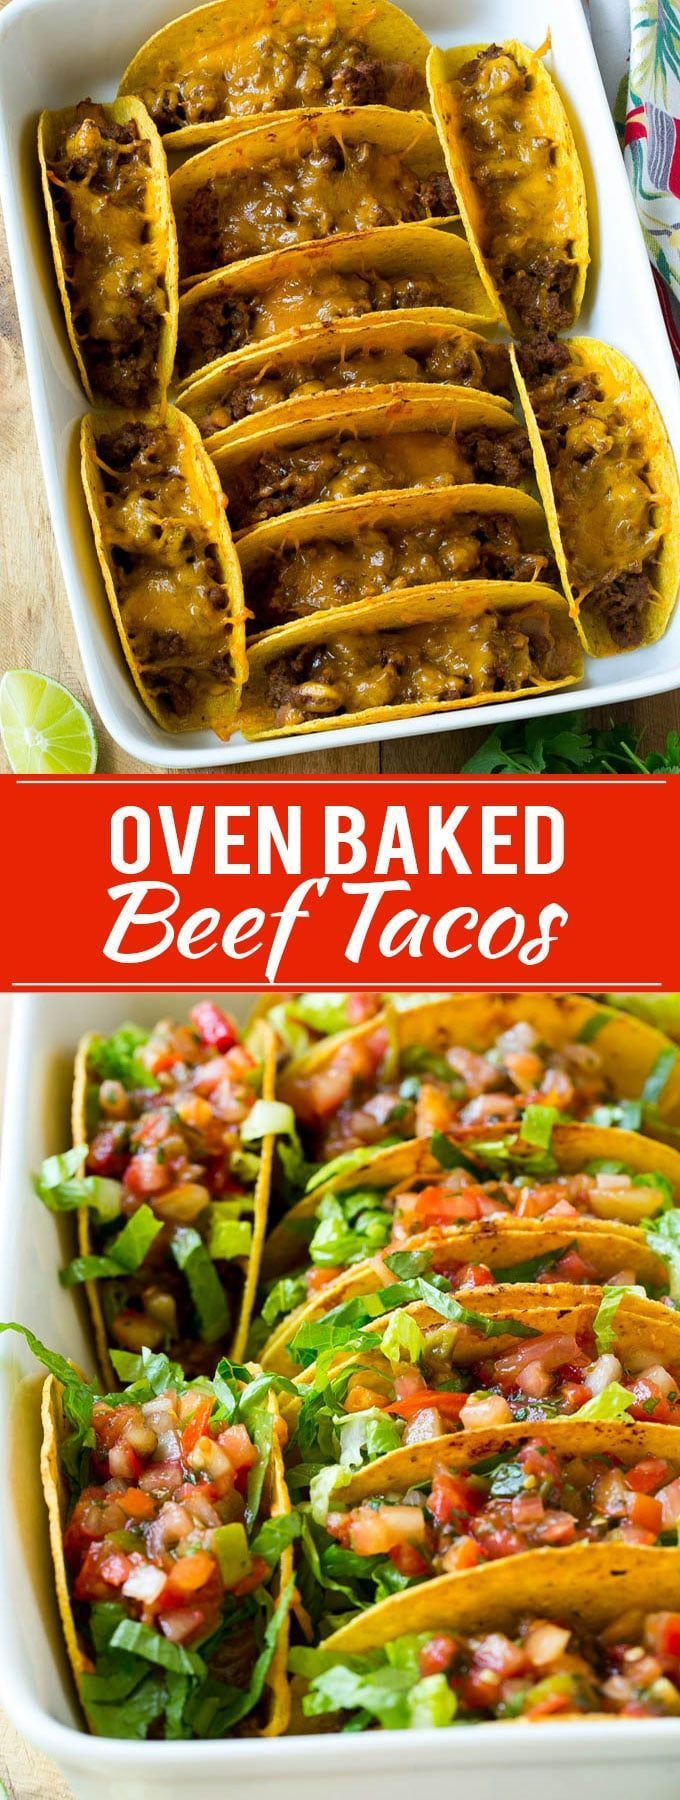 Oven+Baked+Beef+Tacos+Recipe